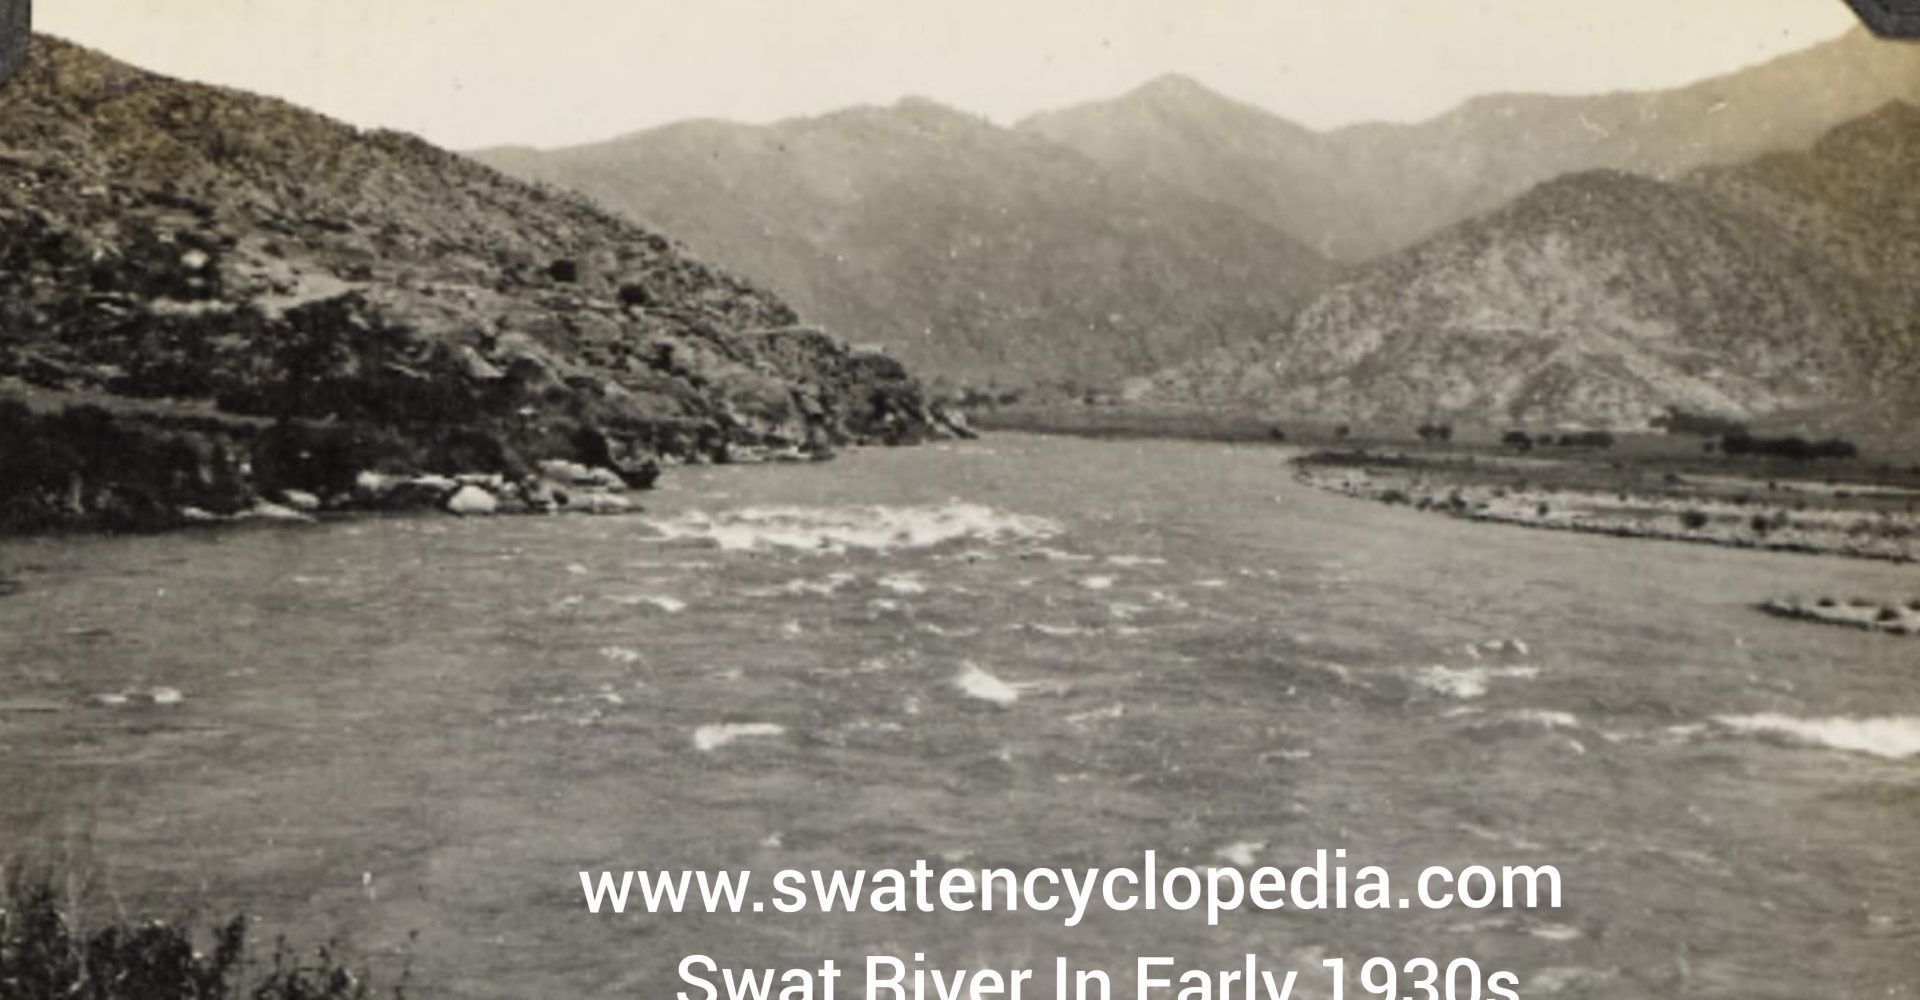 Swat River In Early 1930s